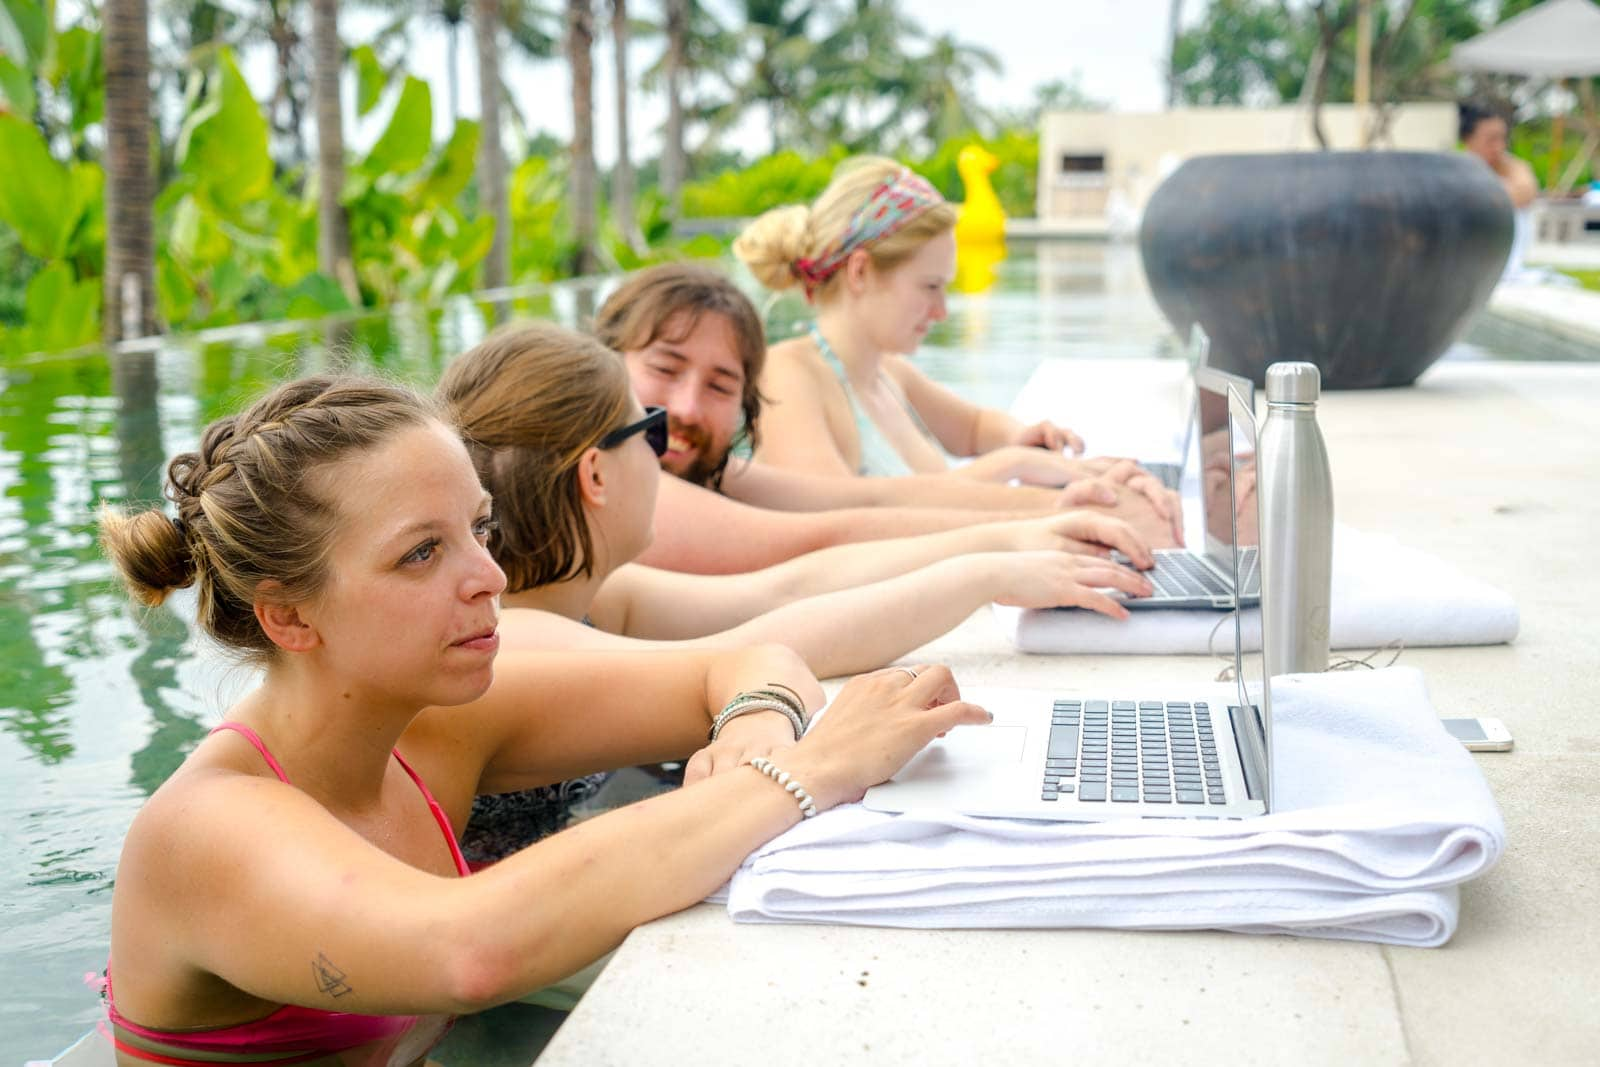 course in bali to learn how to make websites